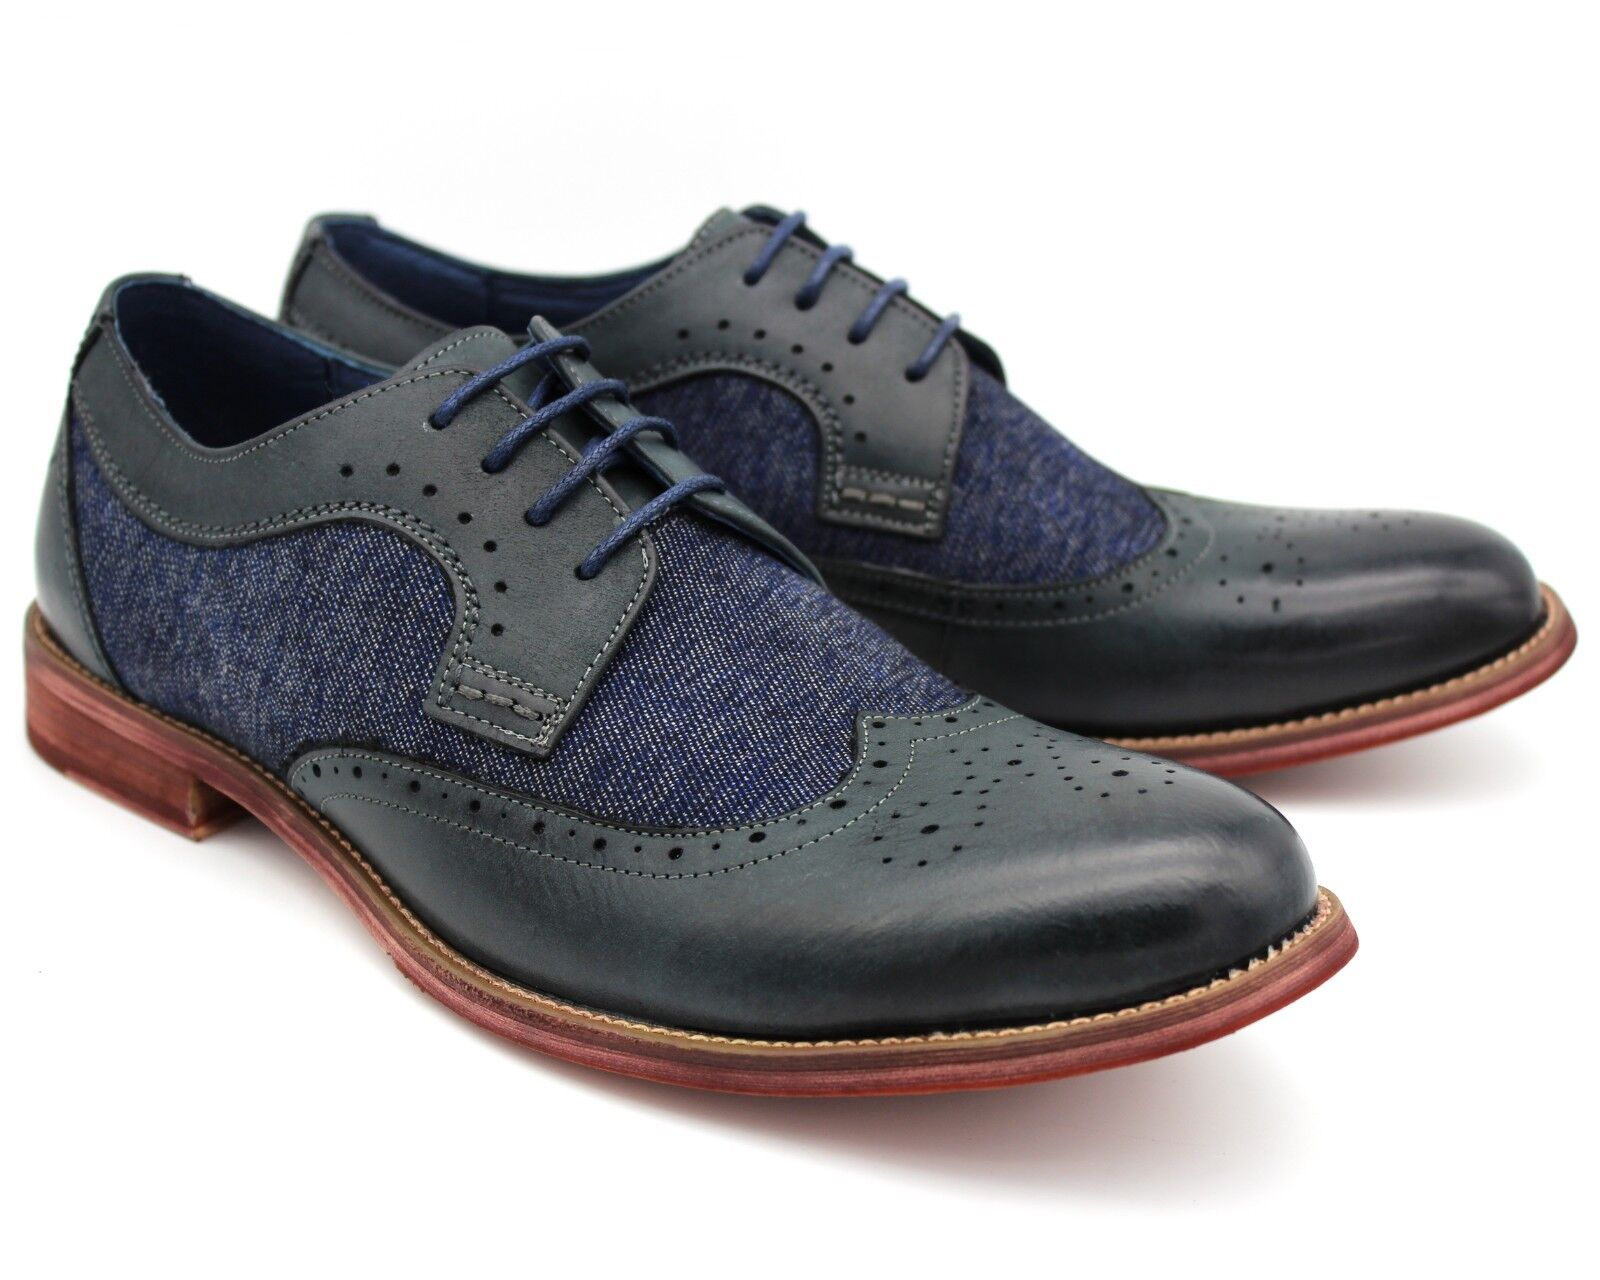 OSCAR NEW MENS NAVY blueE REAL LEATHER CASUAL BROGUE SHOES OFFICE WORK EU46